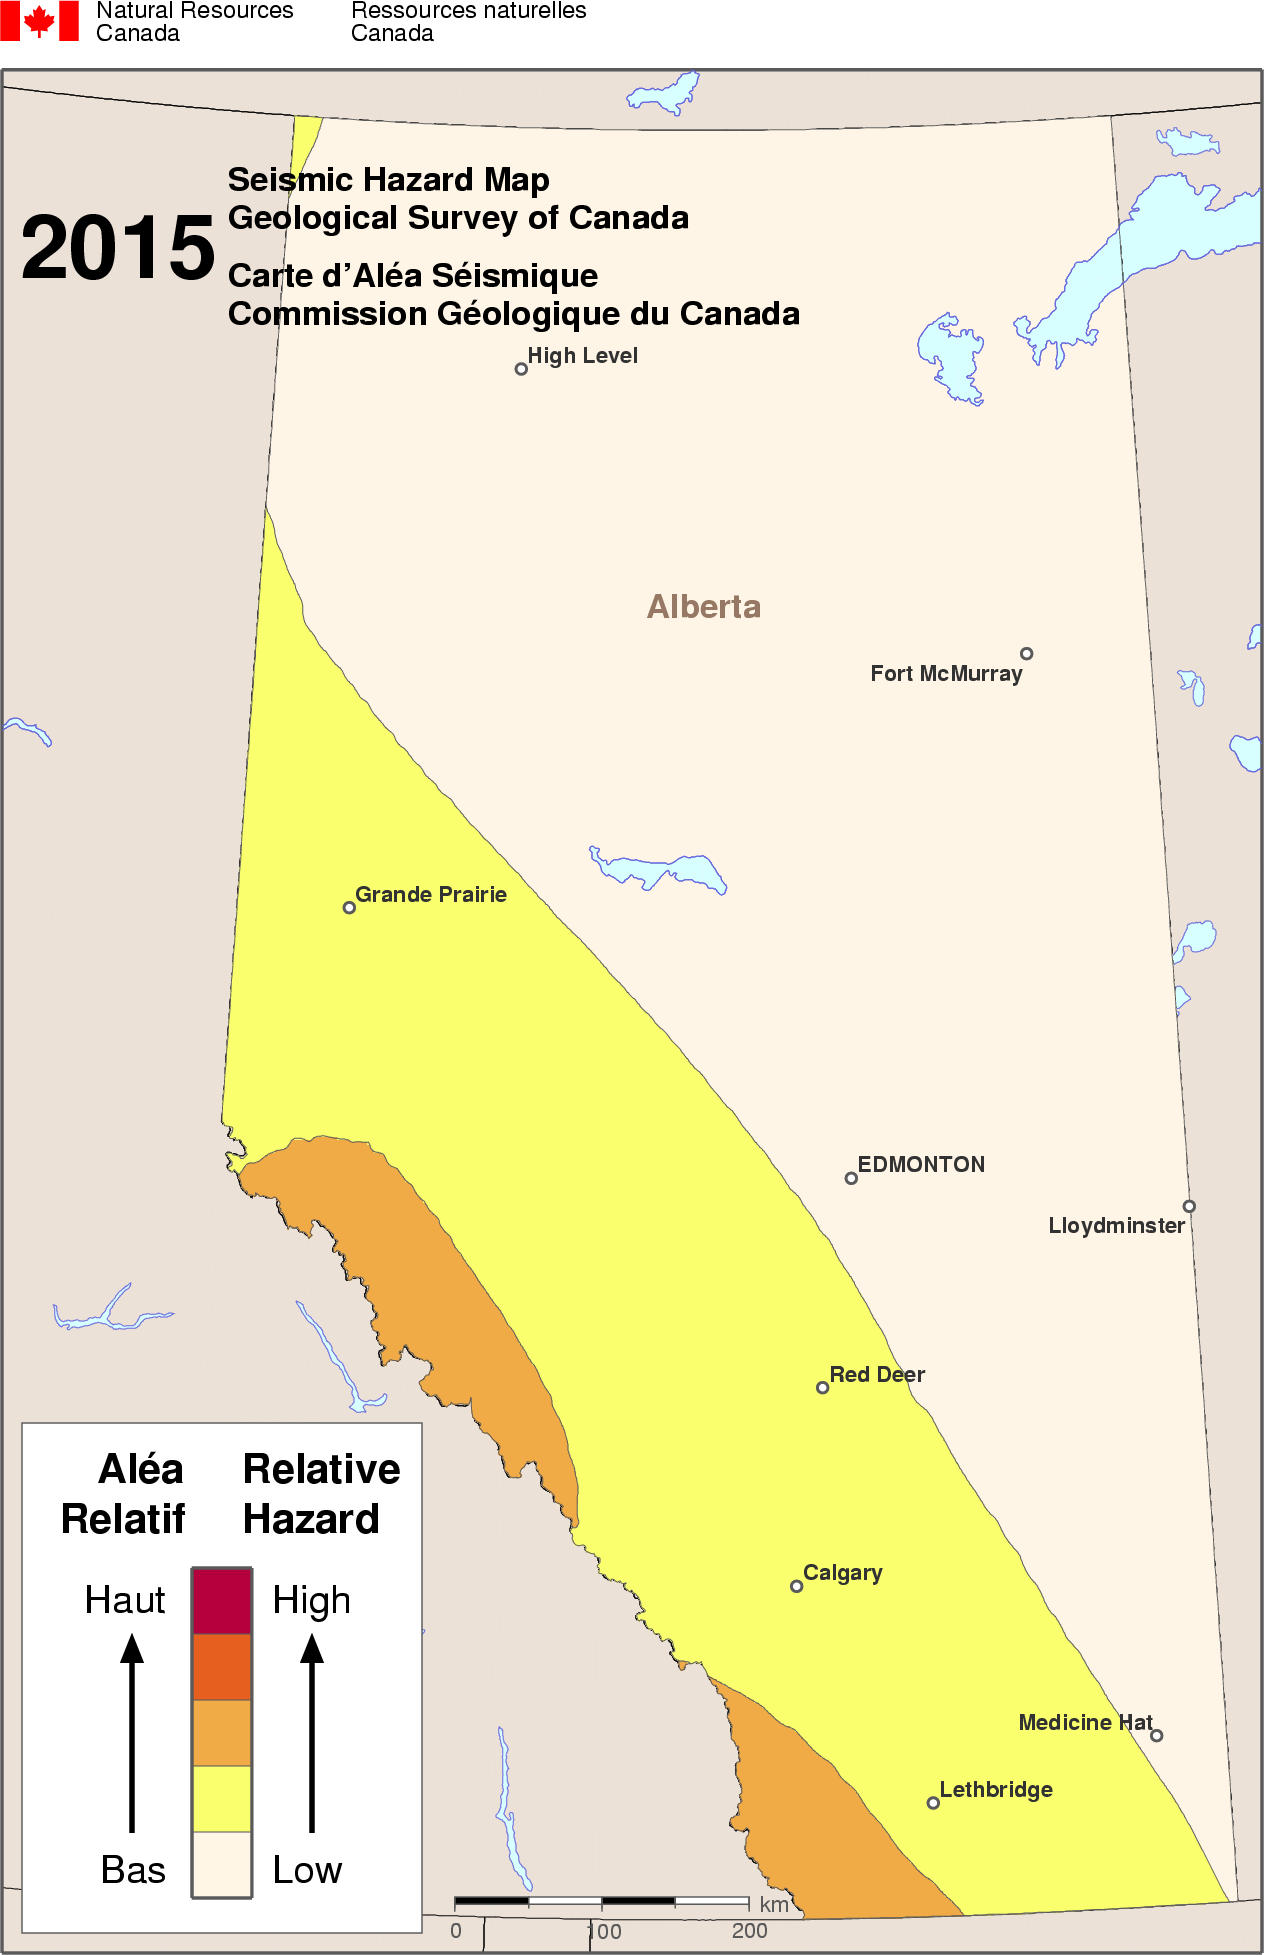 Calgary On Map Of Canada.Simplified Seismic Hazard Map For Canada The Provinces And Territories